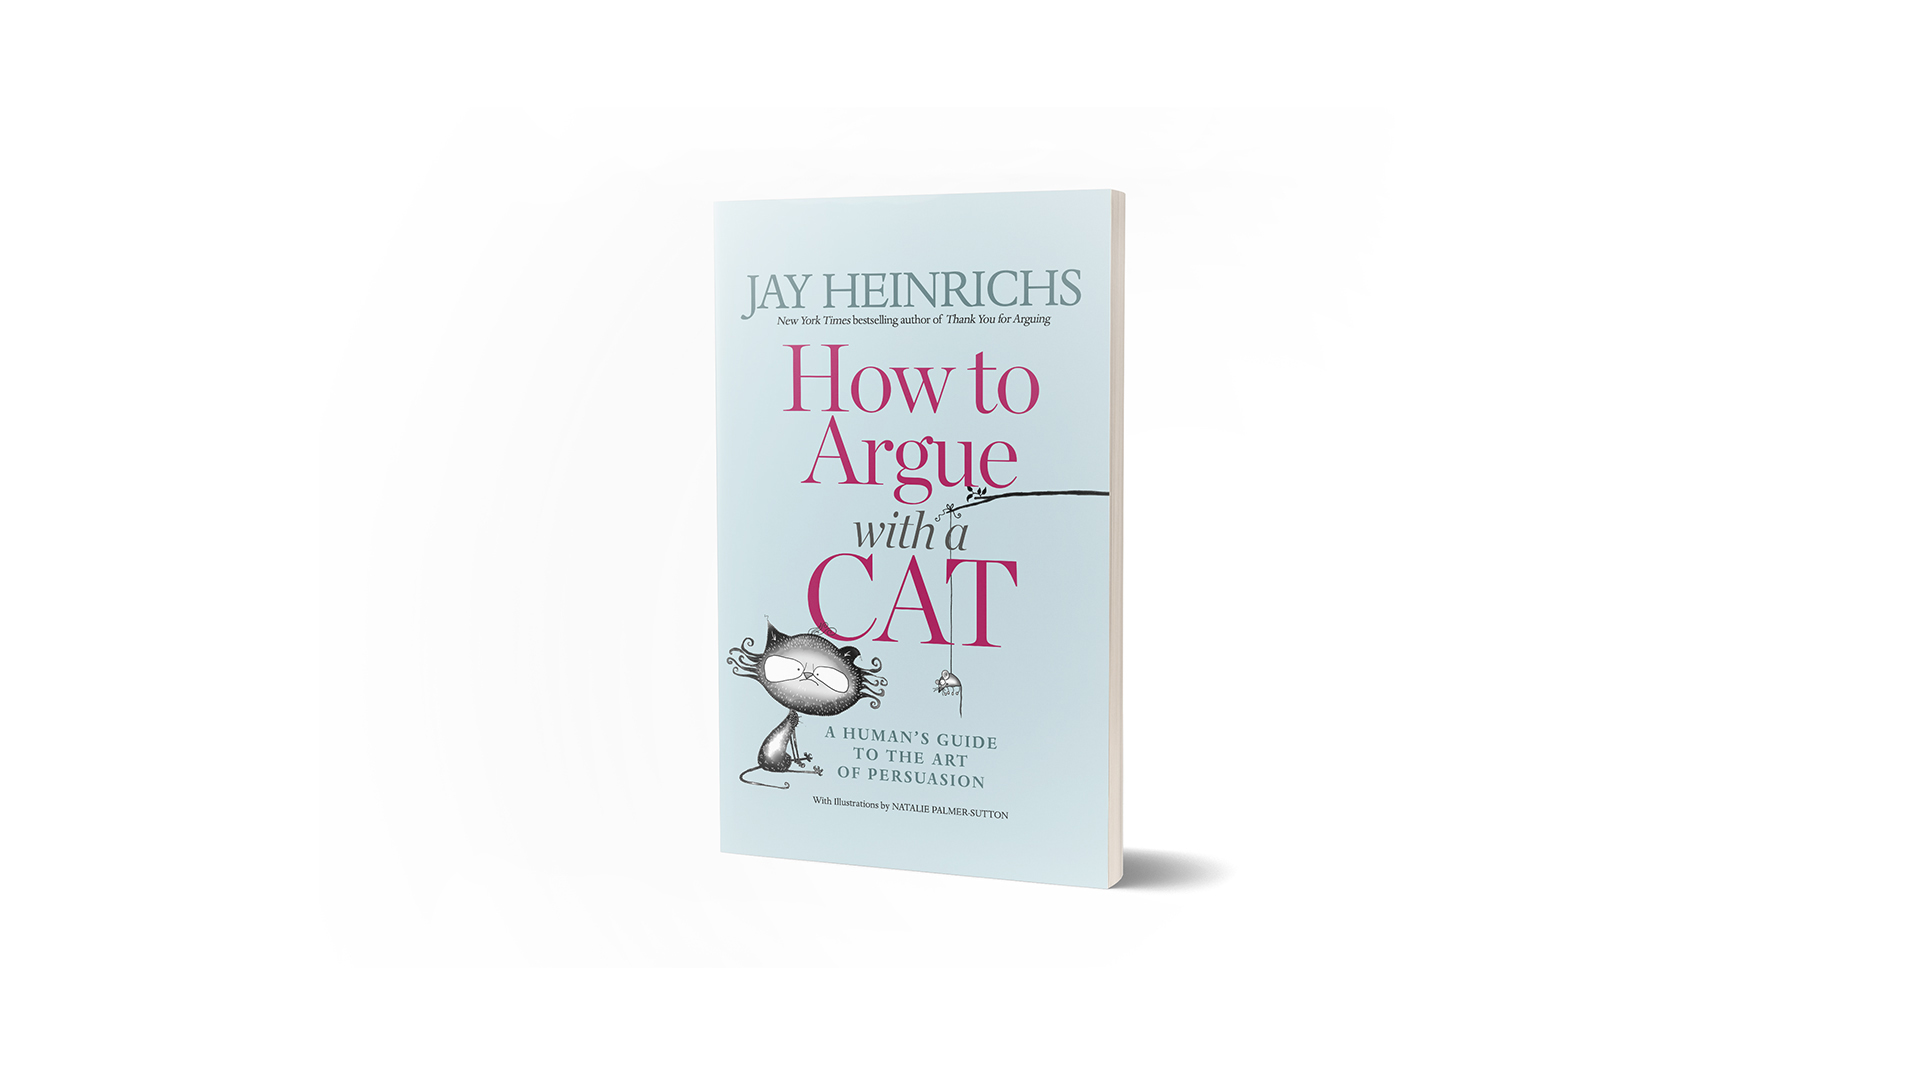 How to argue with a cat | BOOK COVER | JAY HEINRICHS | NATALIE PALMER SUTTON2.jpg